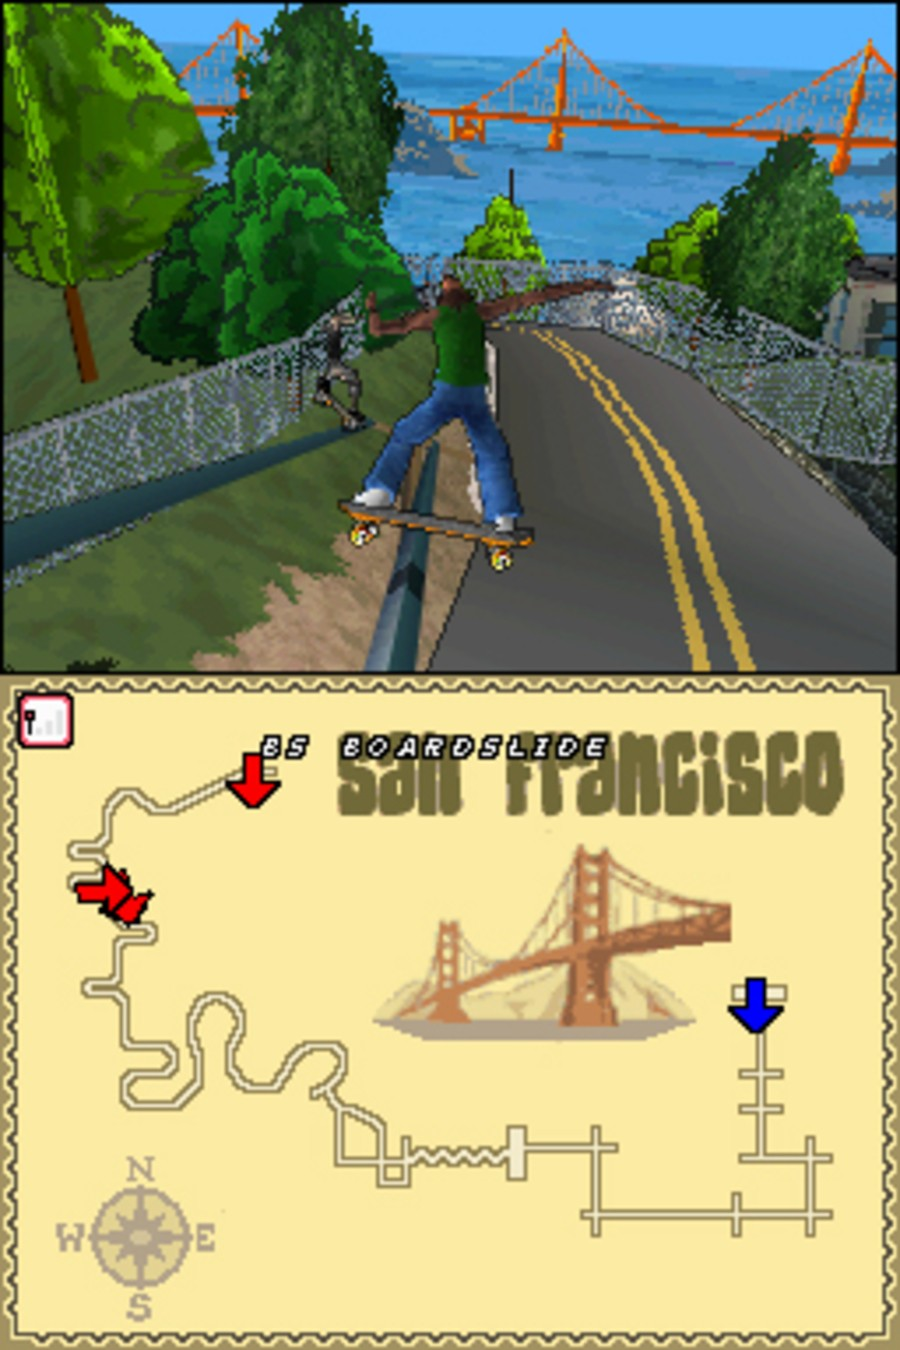 Tony Hawk's Downhill Jam Screenshot